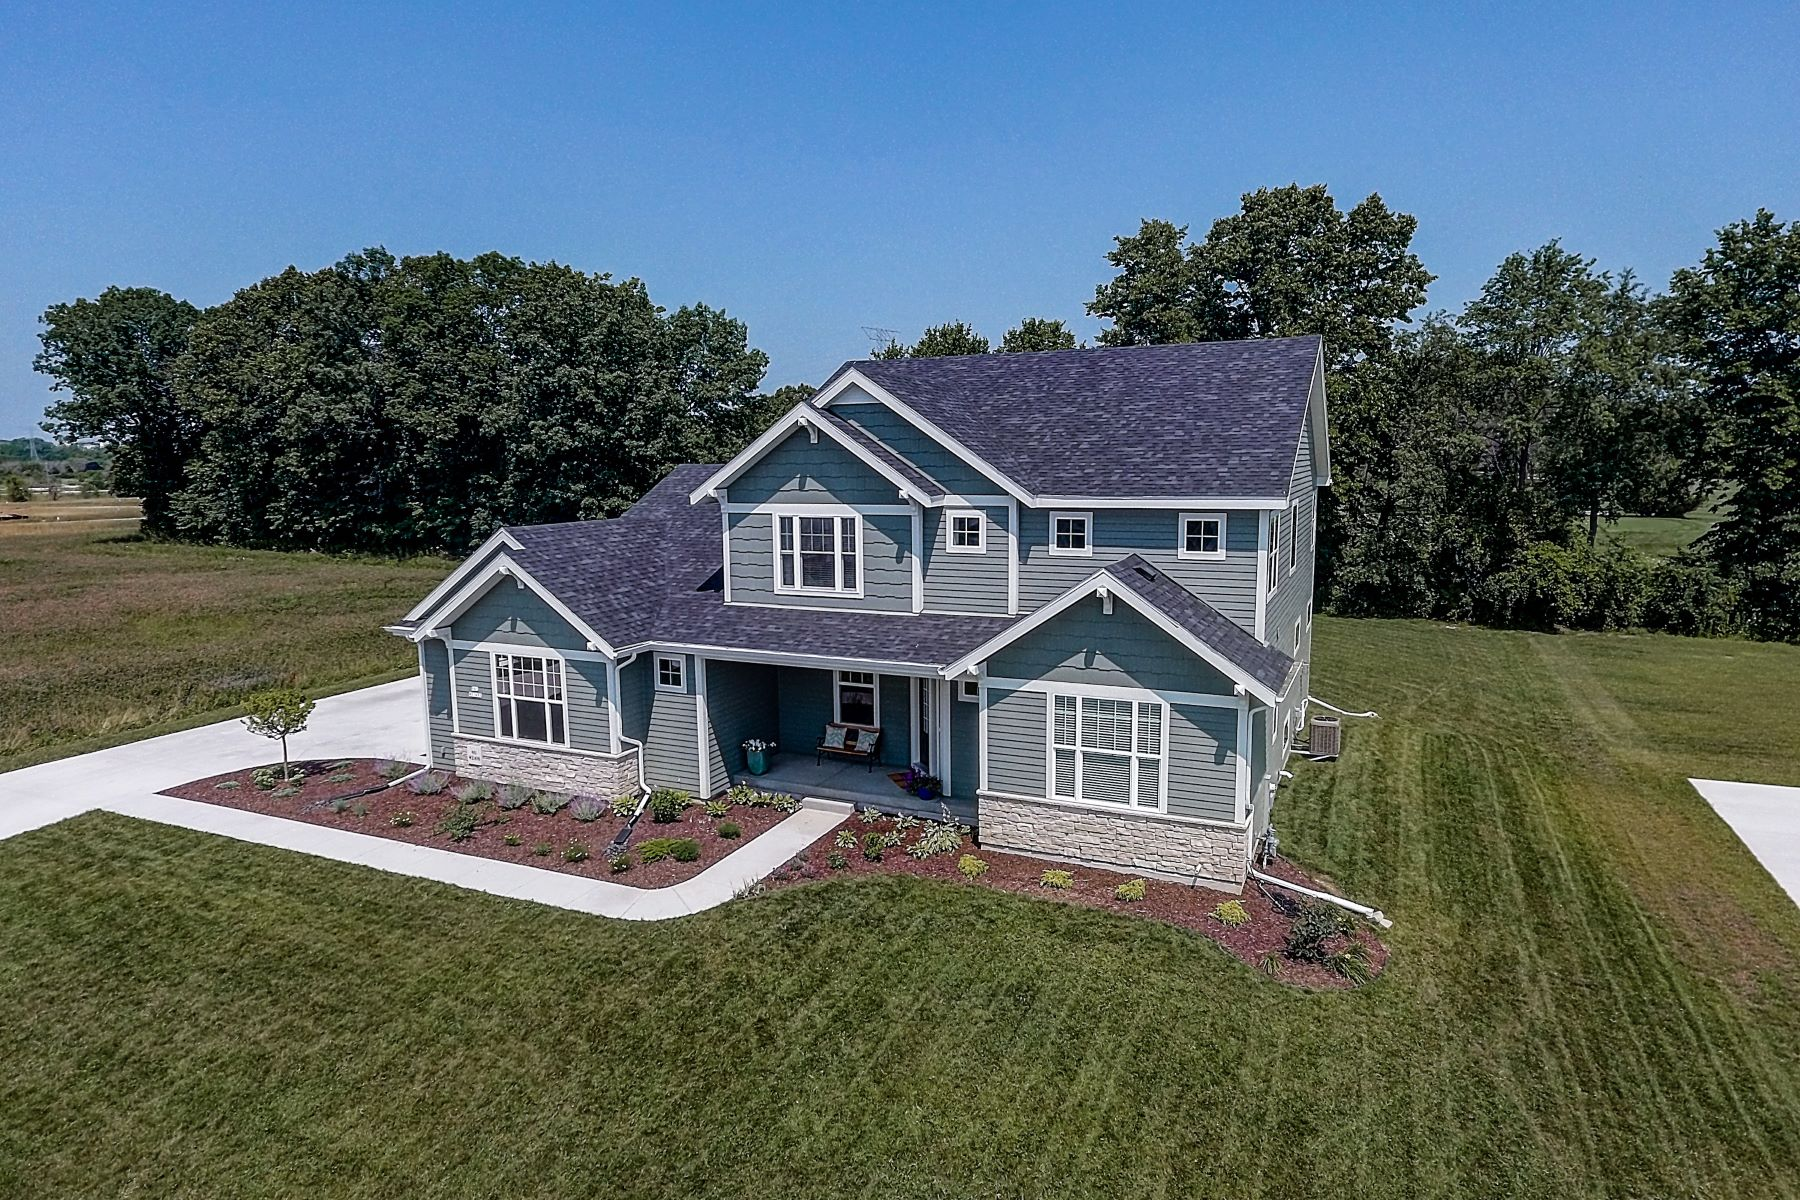 Single Family Homes for Active at N61W21496 Legacy Trl Menomonee Falls, Wisconsin 53051 United States